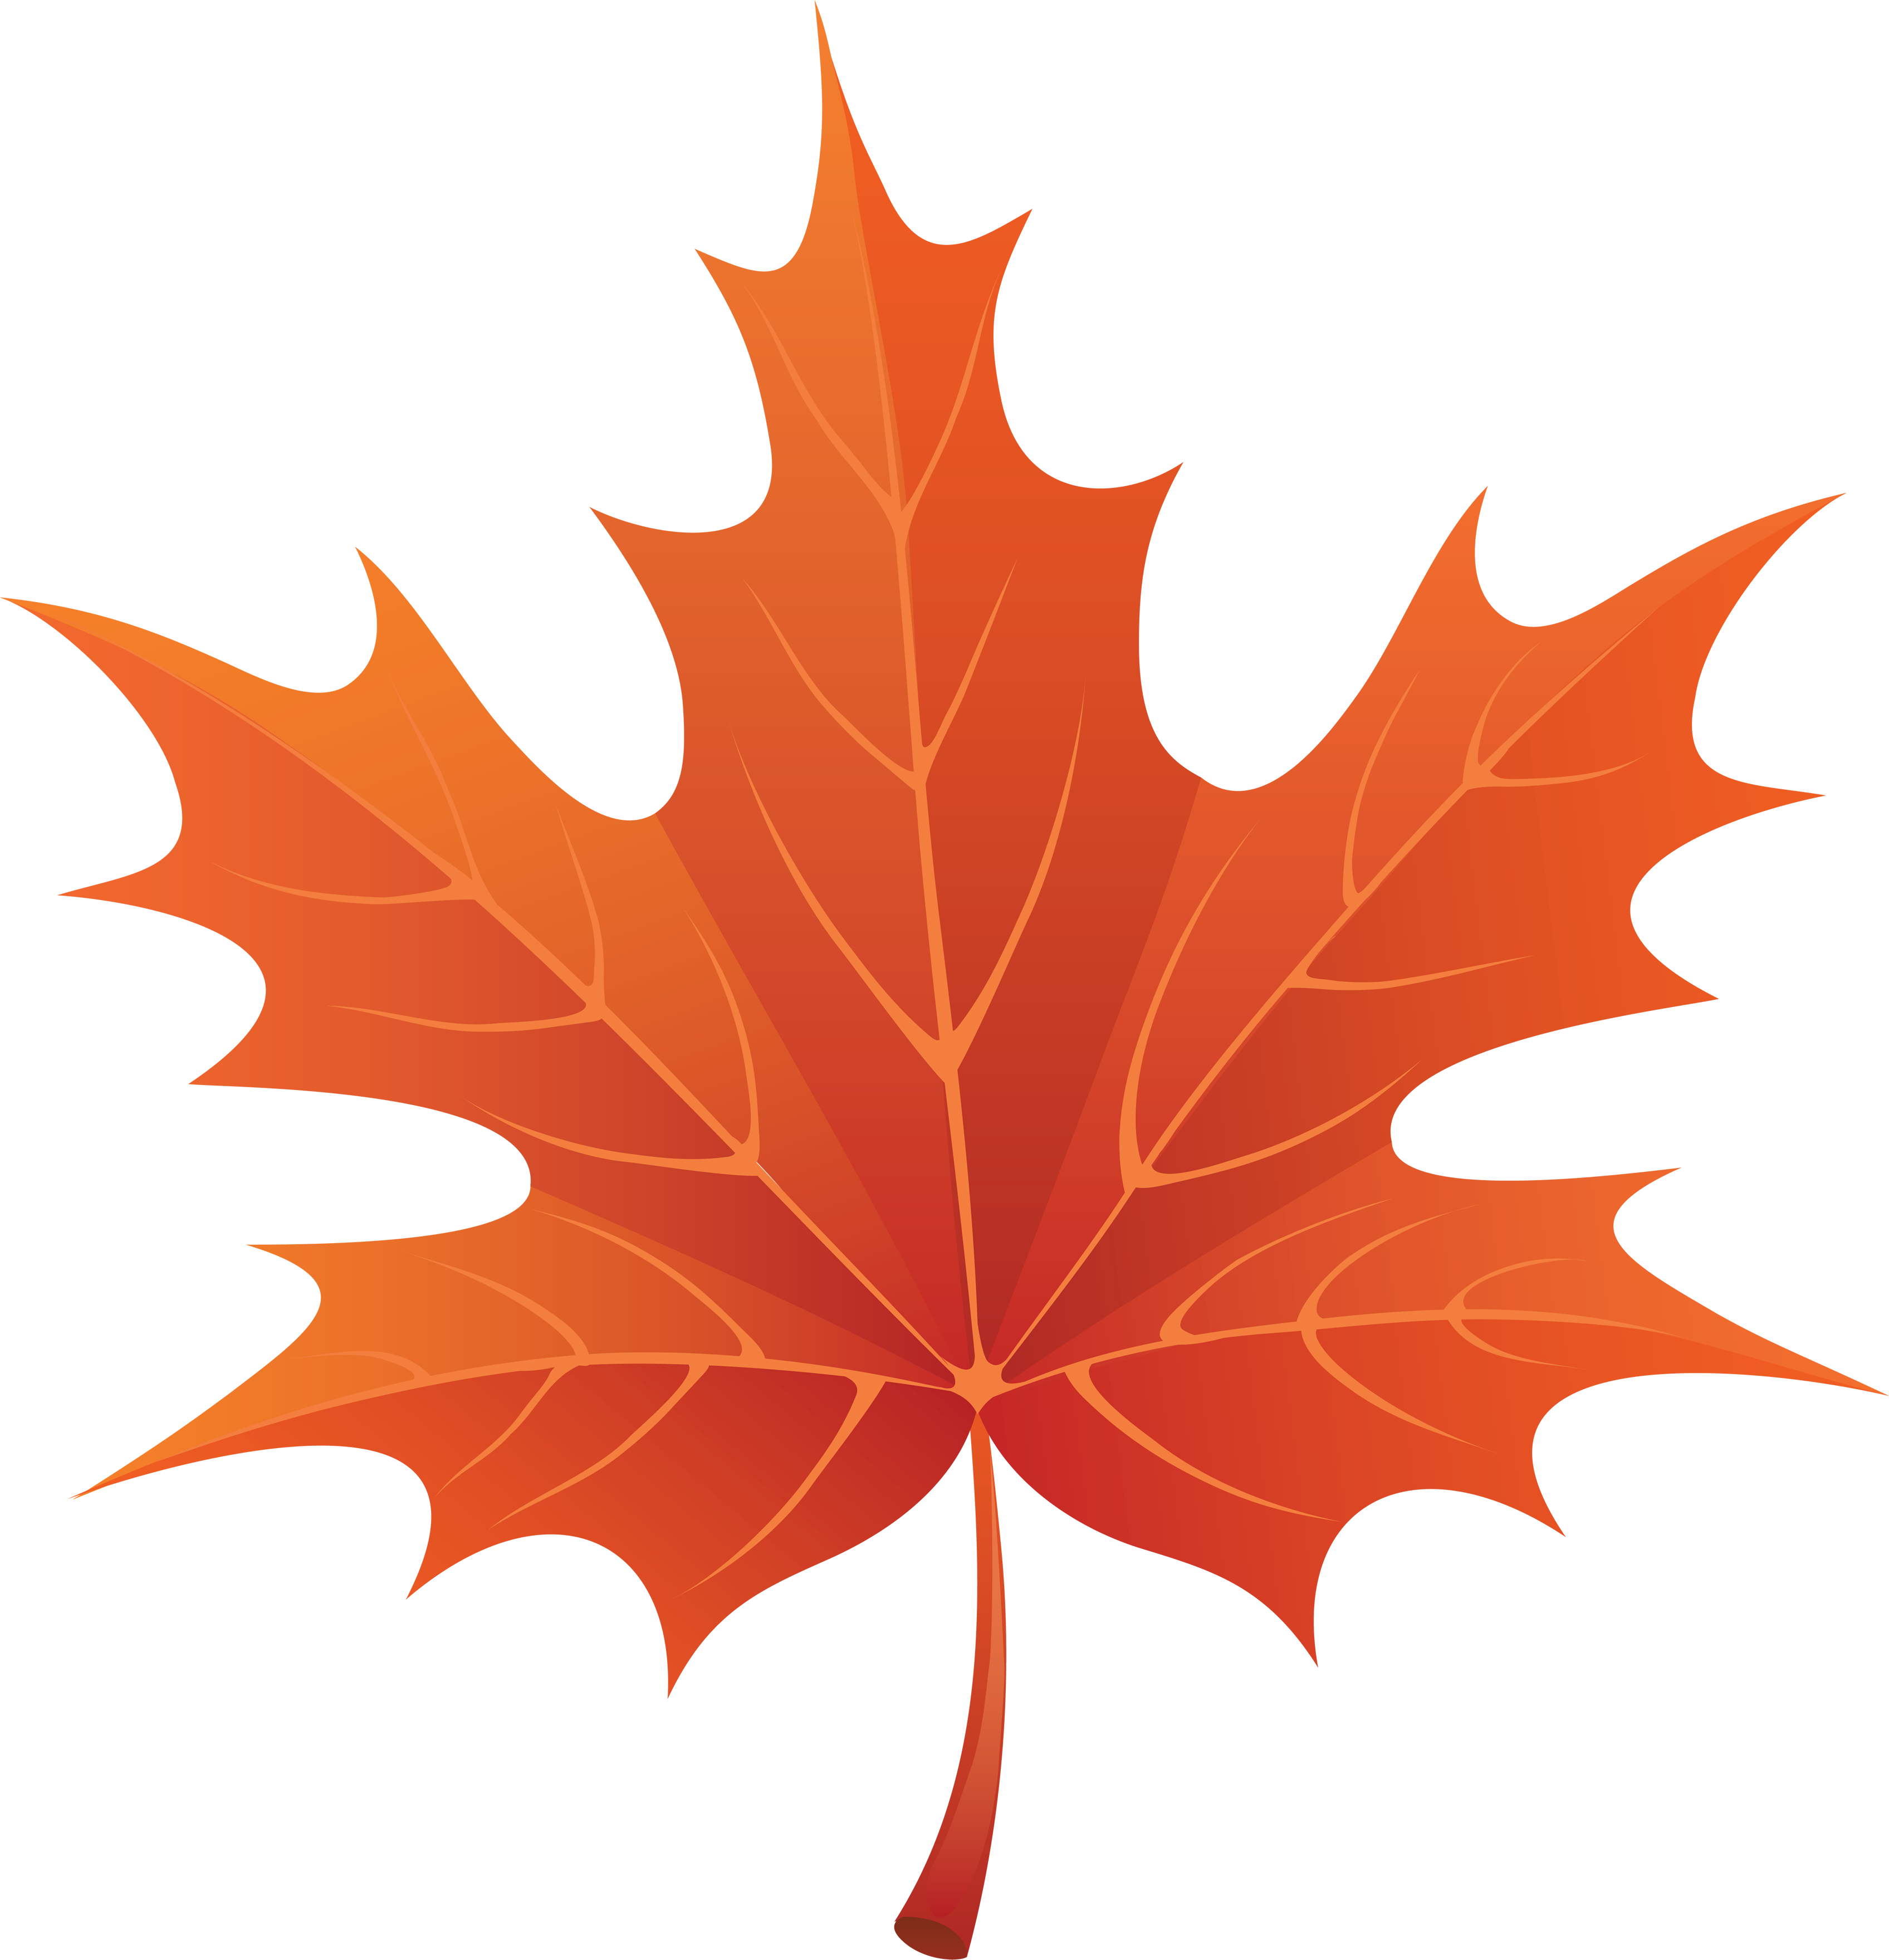 Fall leaves autumn images free yellow pictures clip clip art